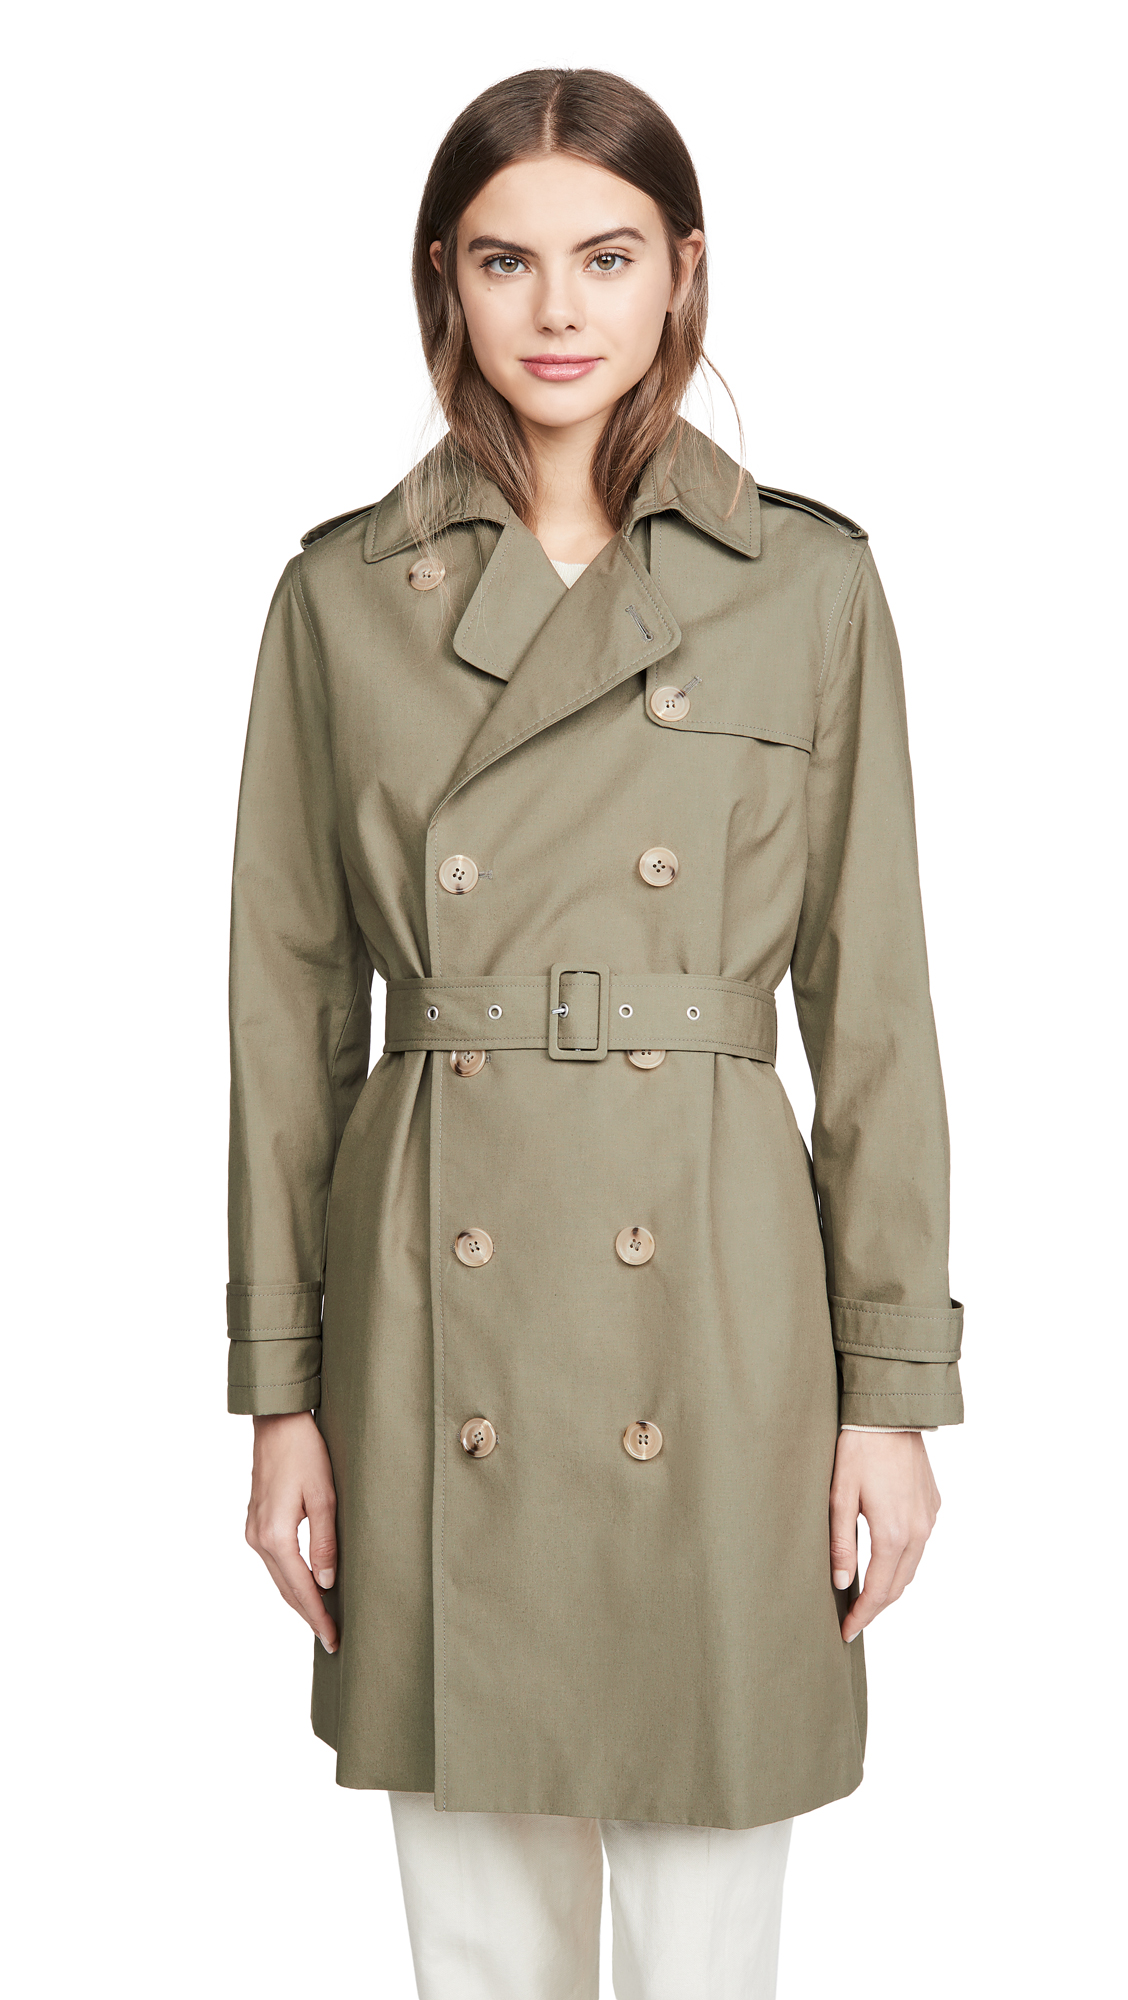 Buy A.P.C. Josephine Trench online beautiful A.P.C. Jackets, Coats, Trench Coats